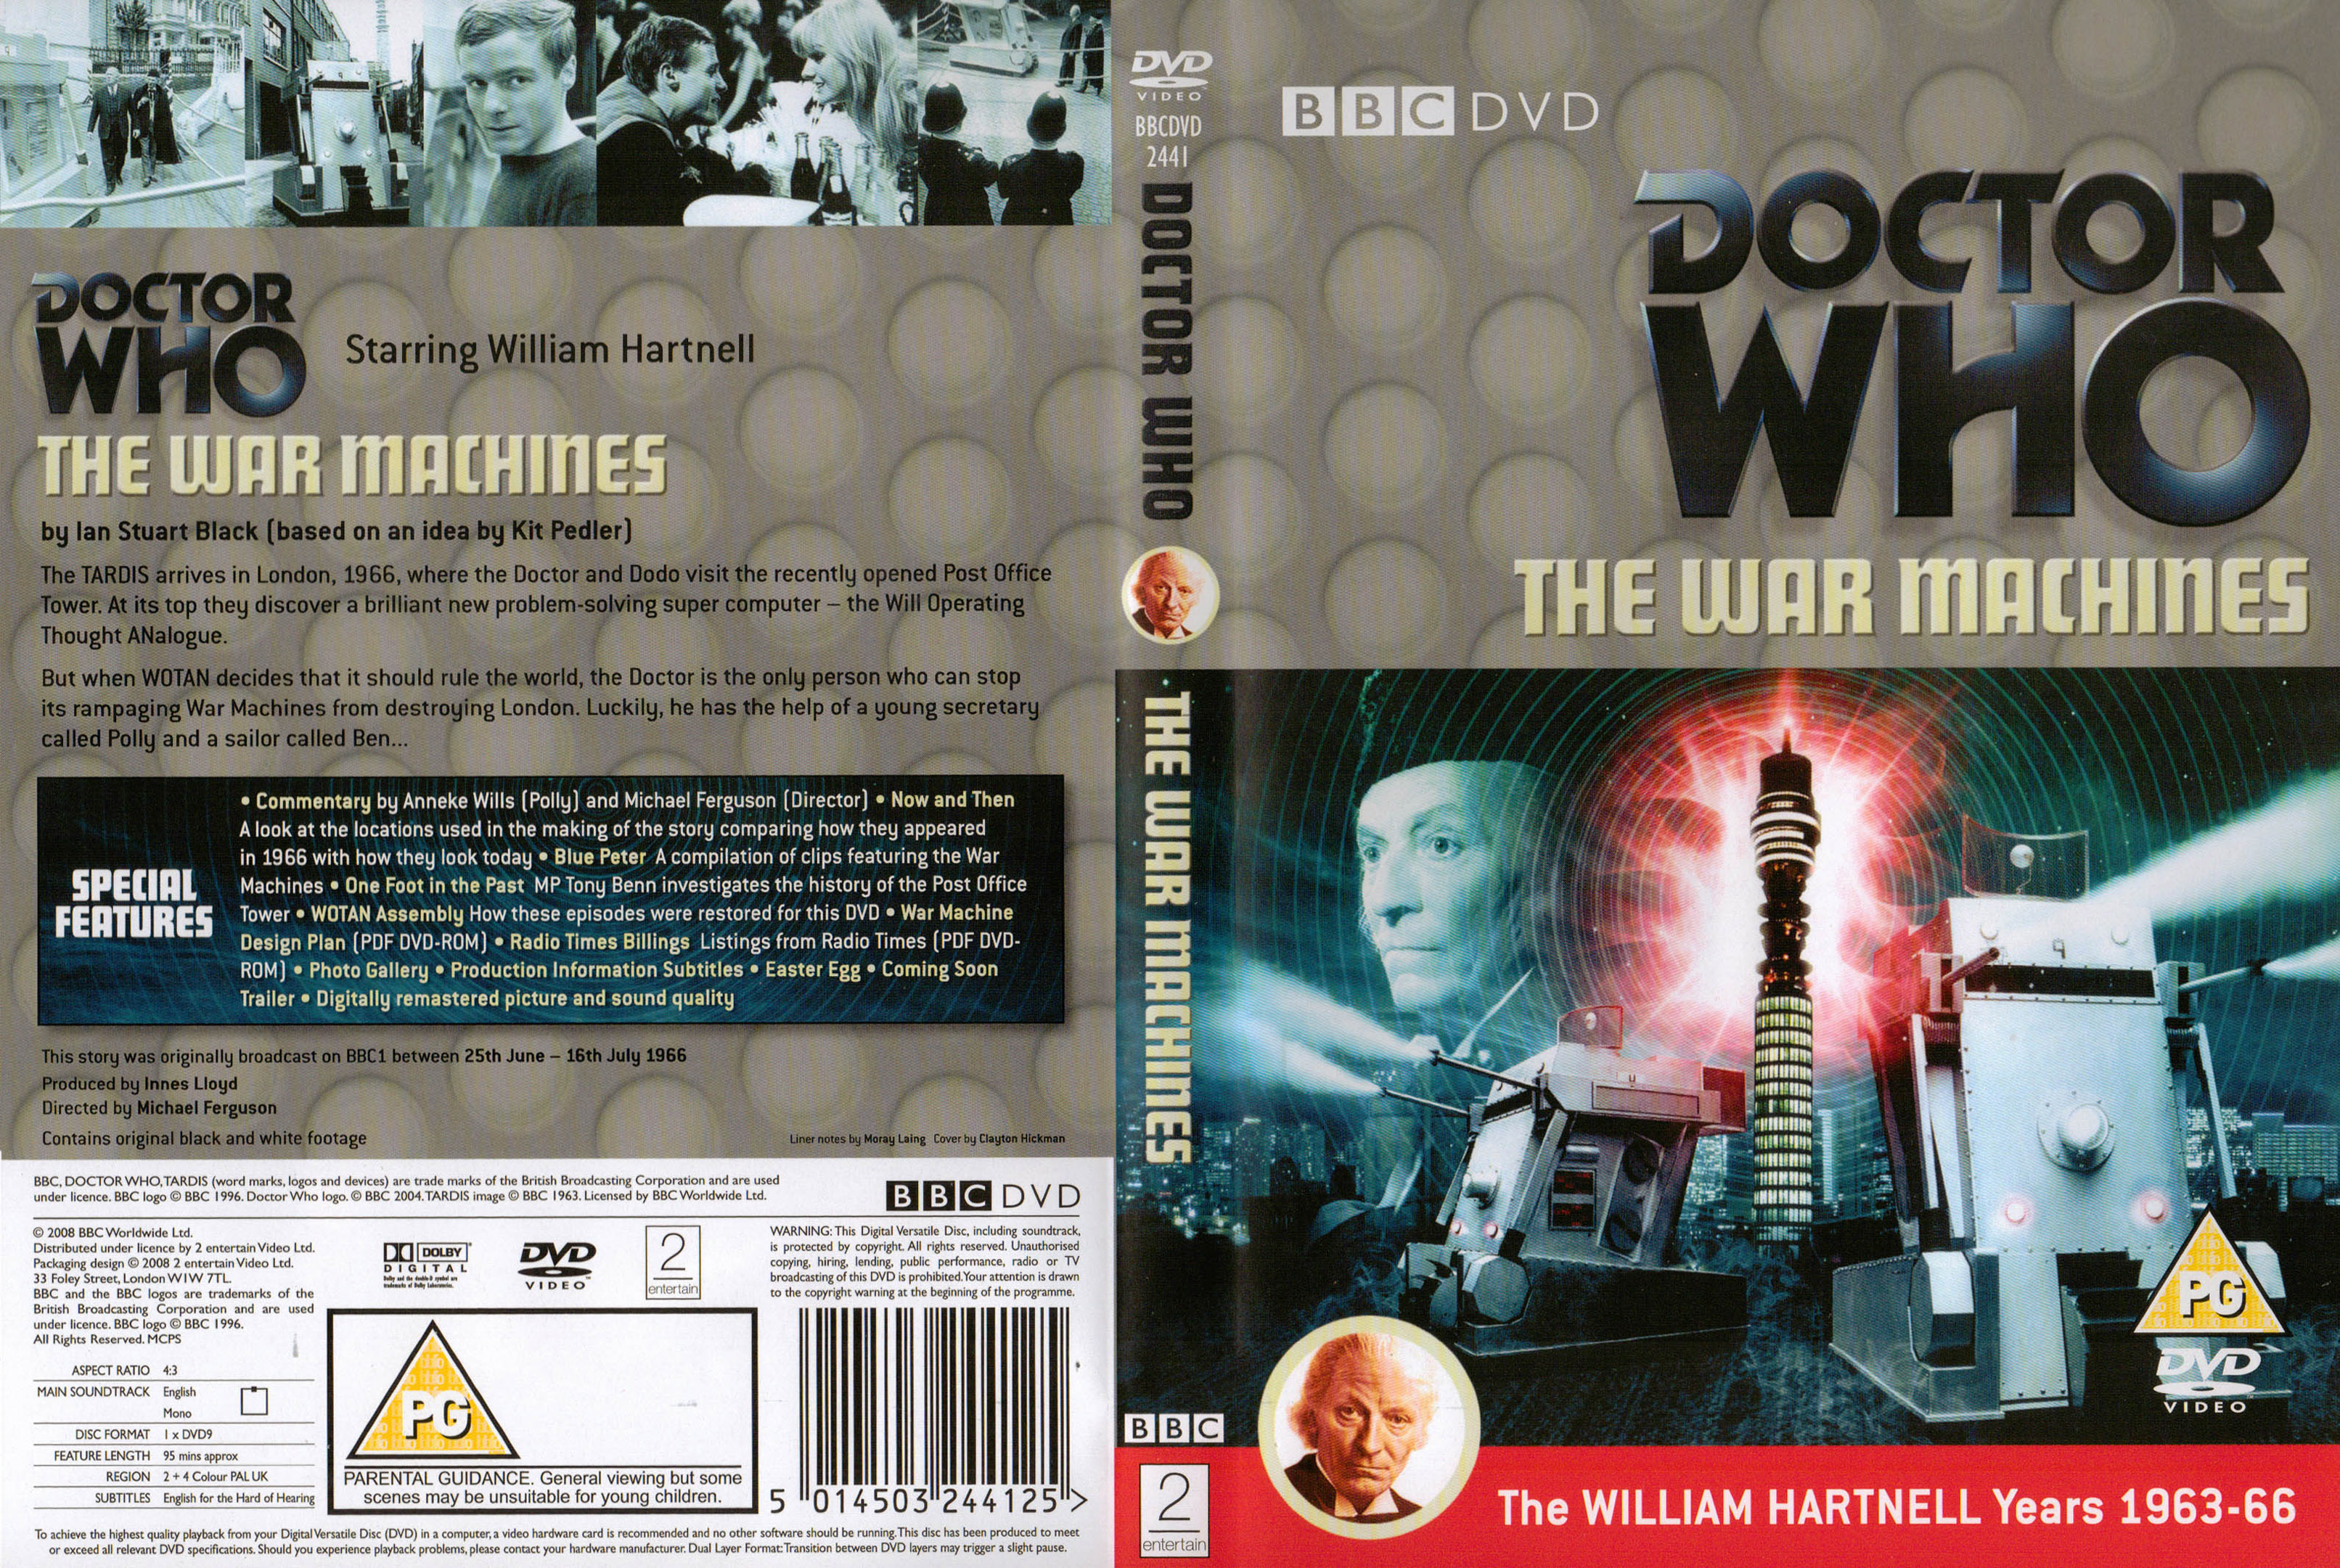 The War Machines DVD